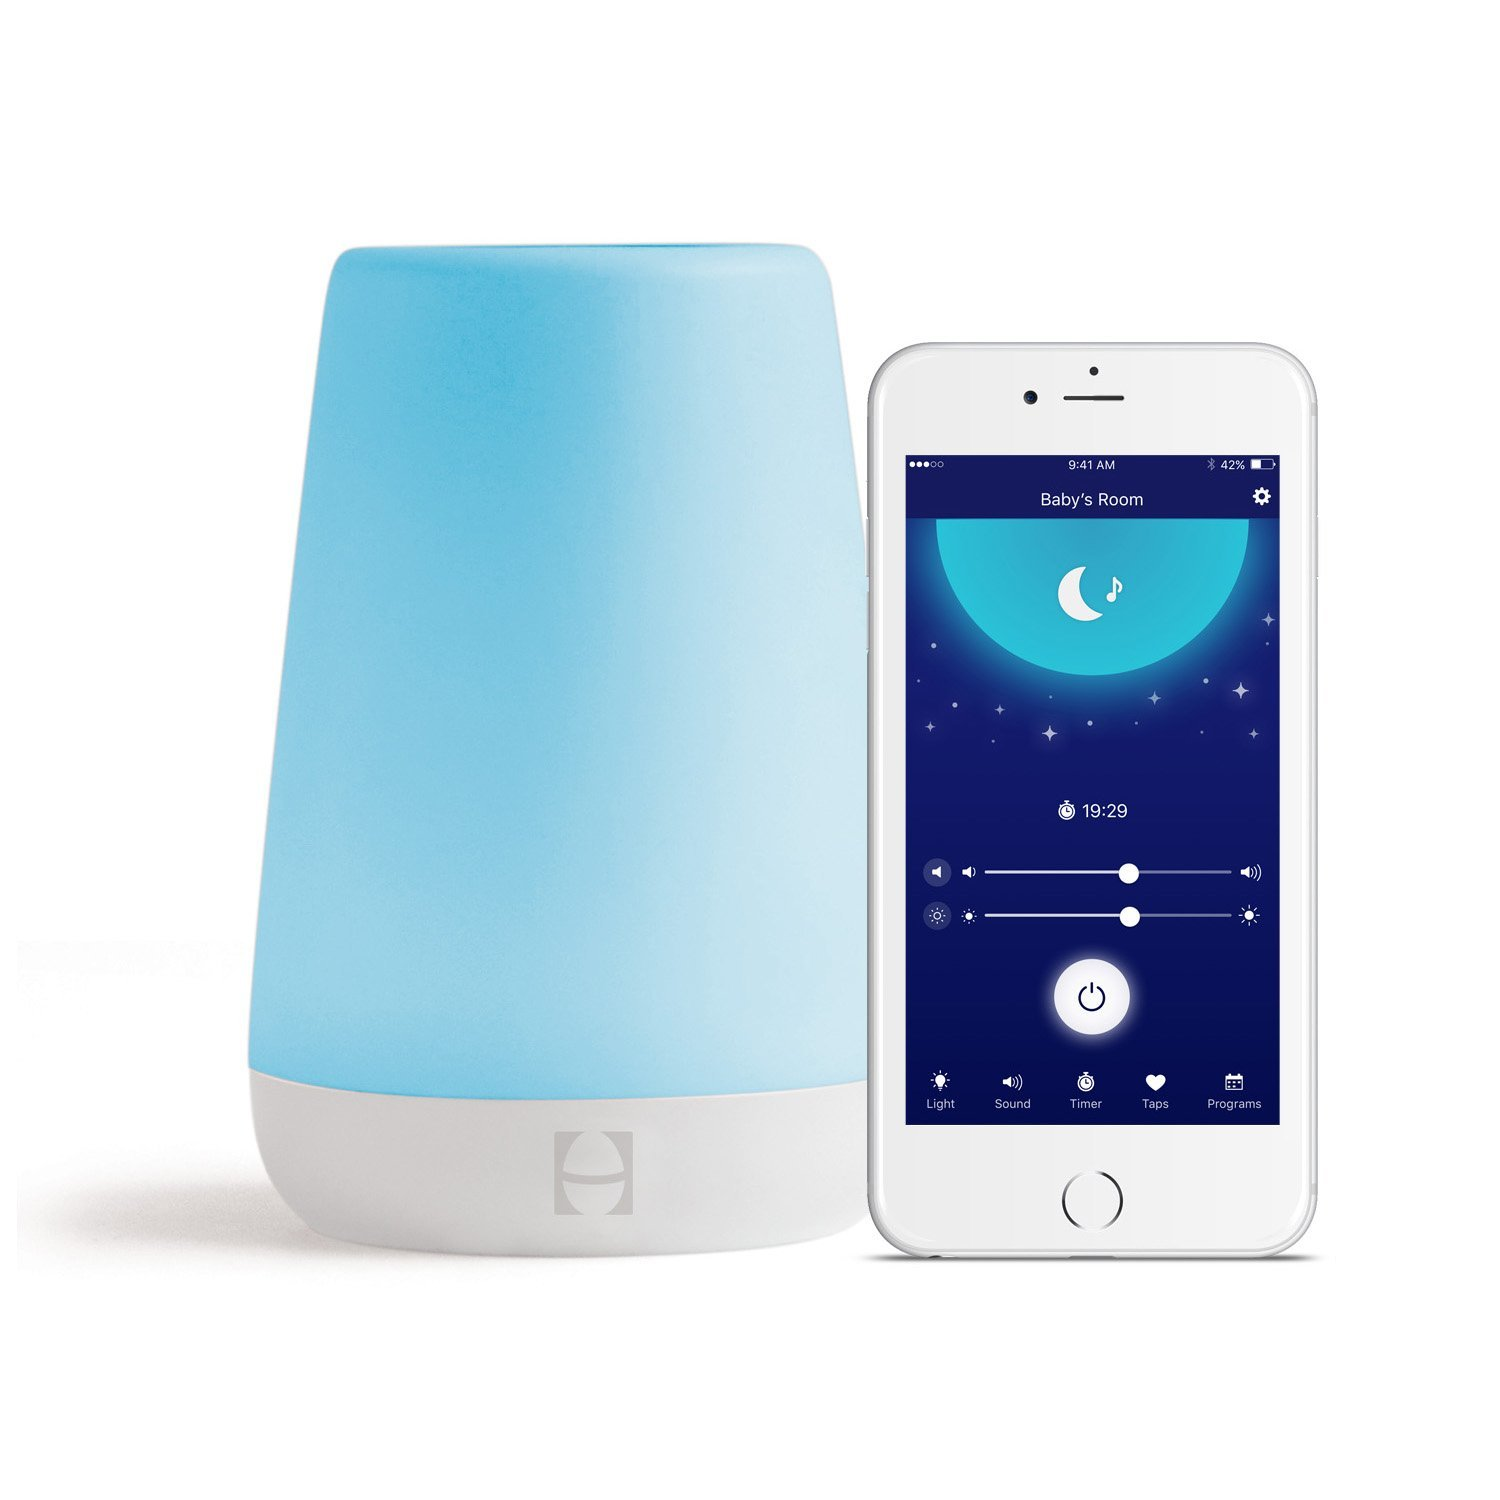 Hatch Baby Rest Sound Machine, Night Light and Time-to-Rise sleep habits for babies Sleep habits for babies – Sleep Gadgets to help your baby fall asleep 61ASu 5HgBL